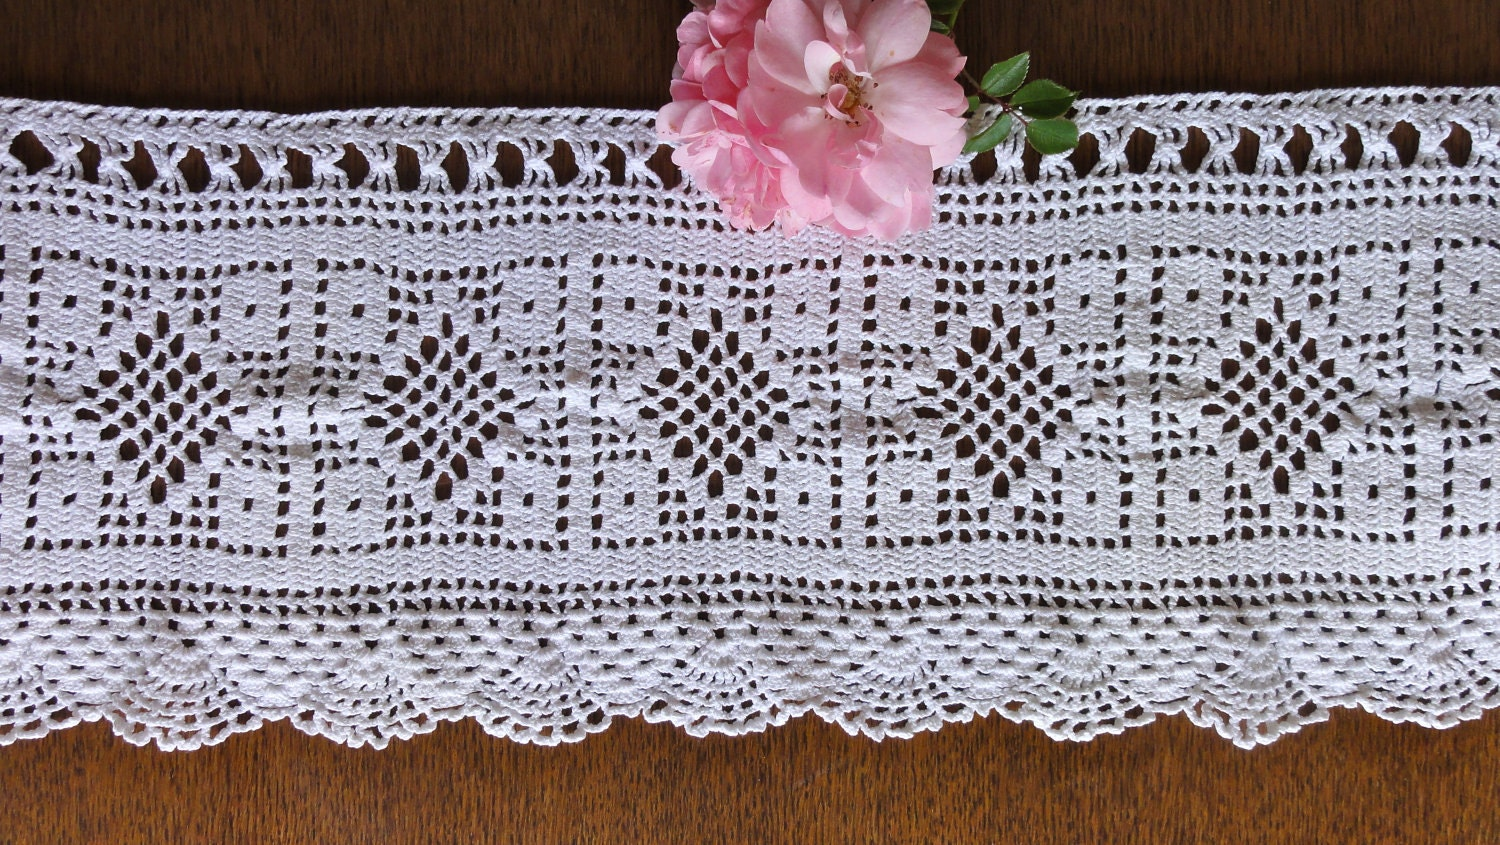 Crochet Patterns Curtains : Vintage Crochet Curtain White Filet Valance by oldamsterdam